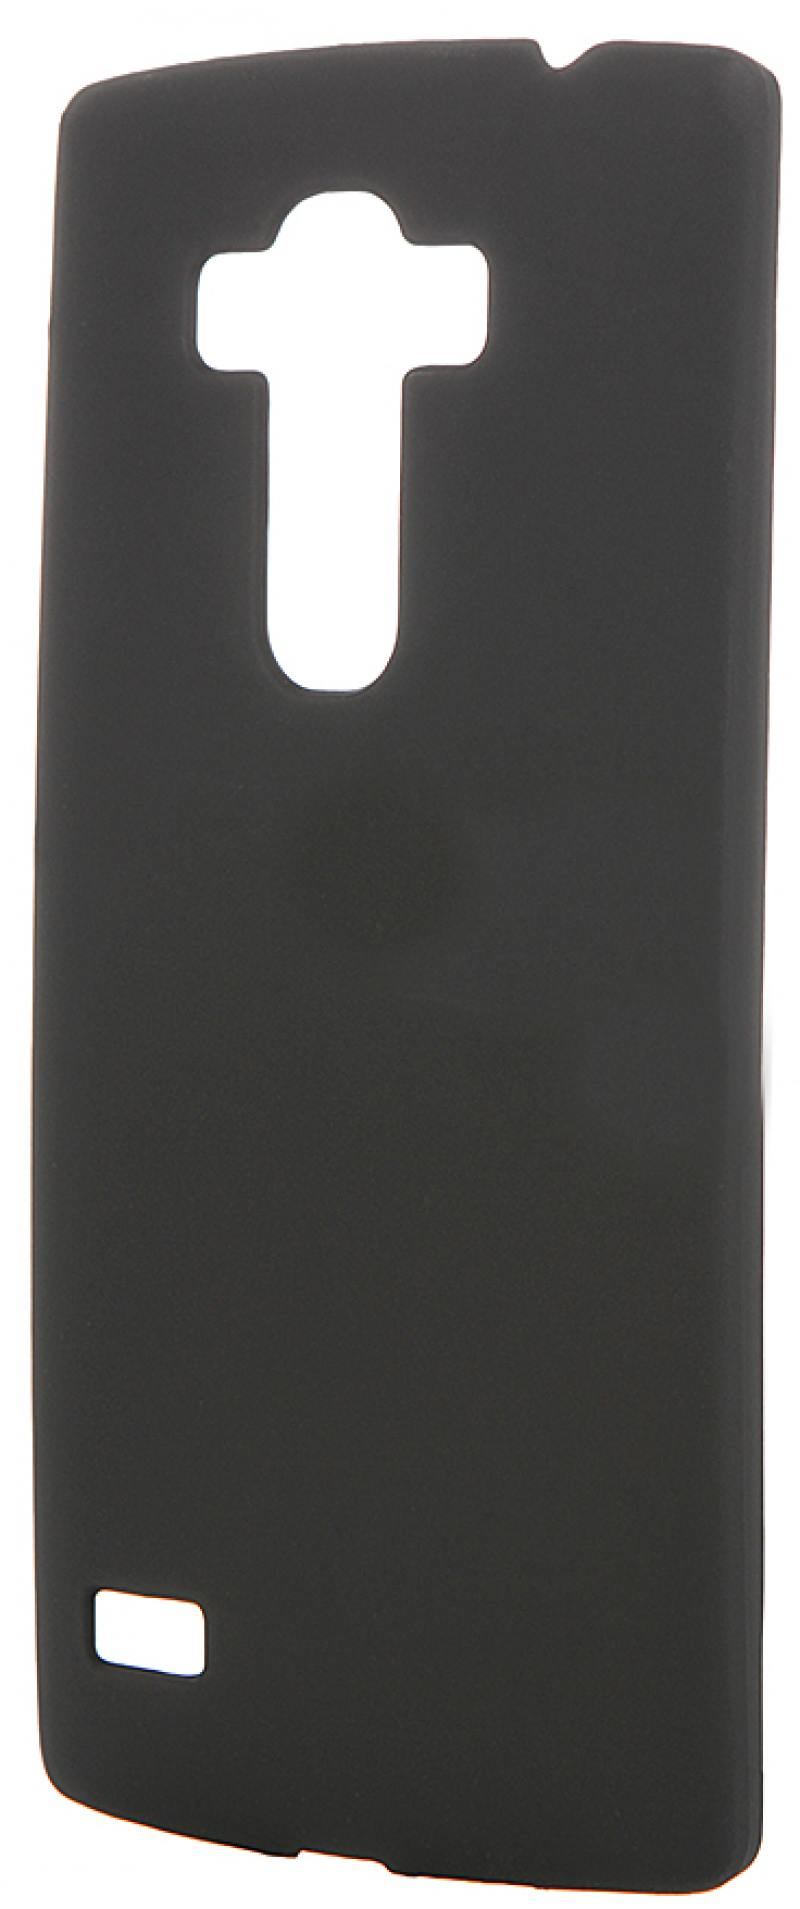 Чехол-накладка для LG G4S Pulsar CLIPCASE PC Soft-Touch Black клип-кейс, пластик клип кейс lg cch 210 для l5 ii черный